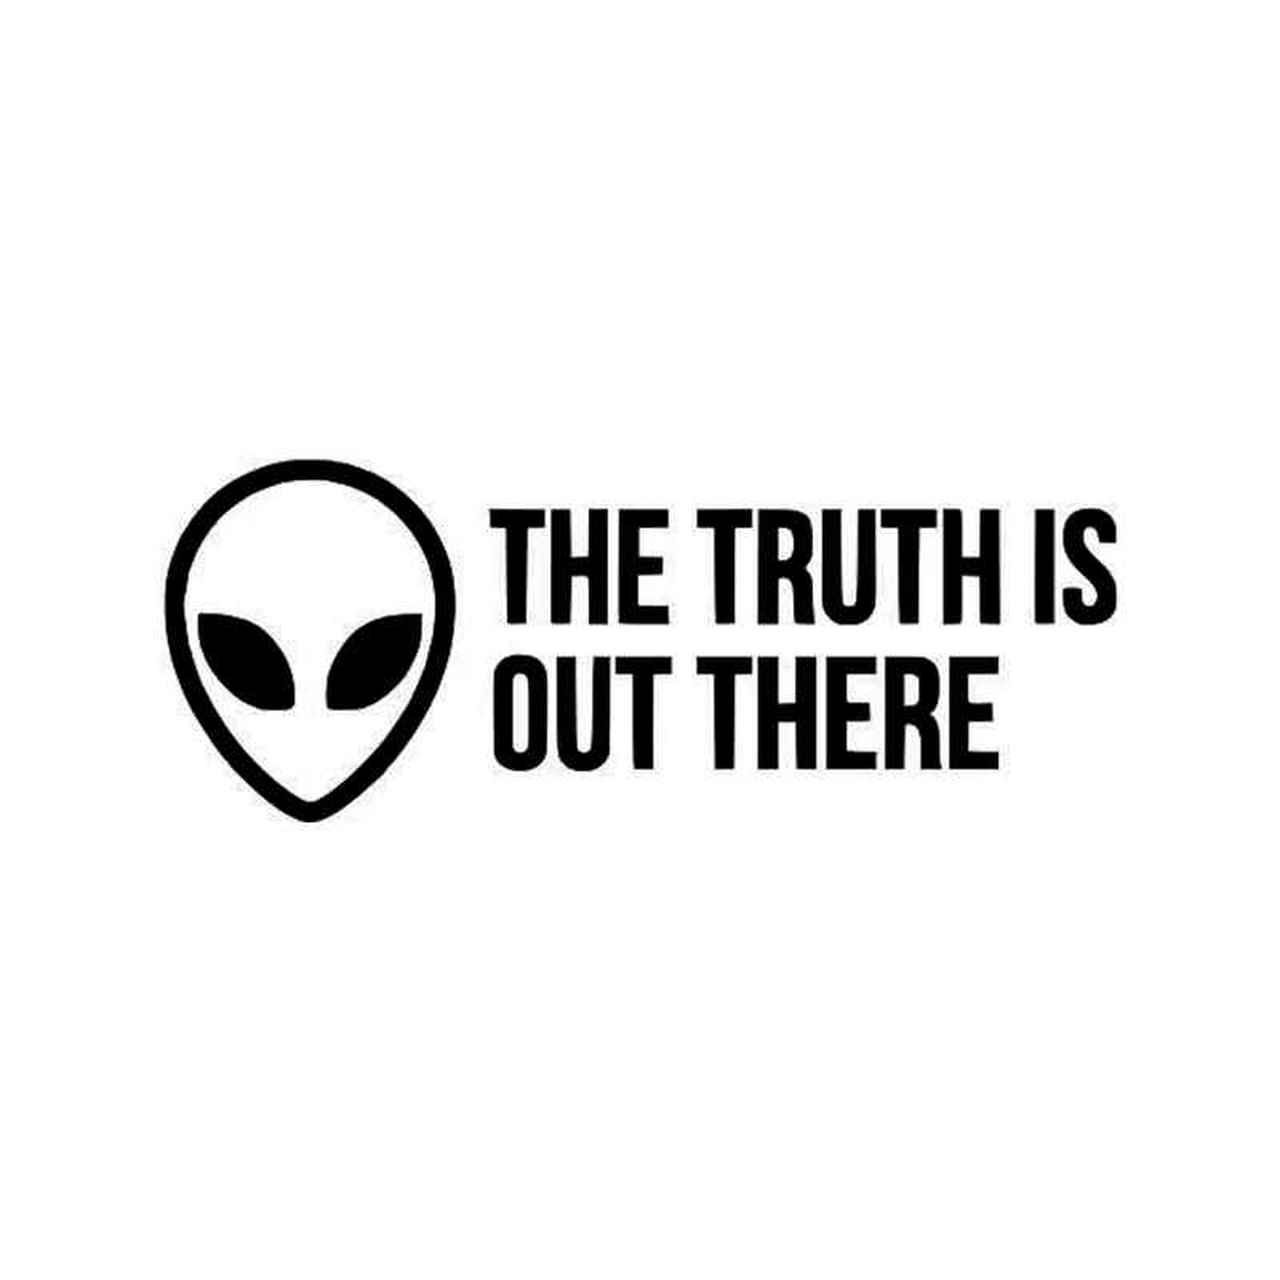 X Files The Truth Is Out There Vinyl Sticker.